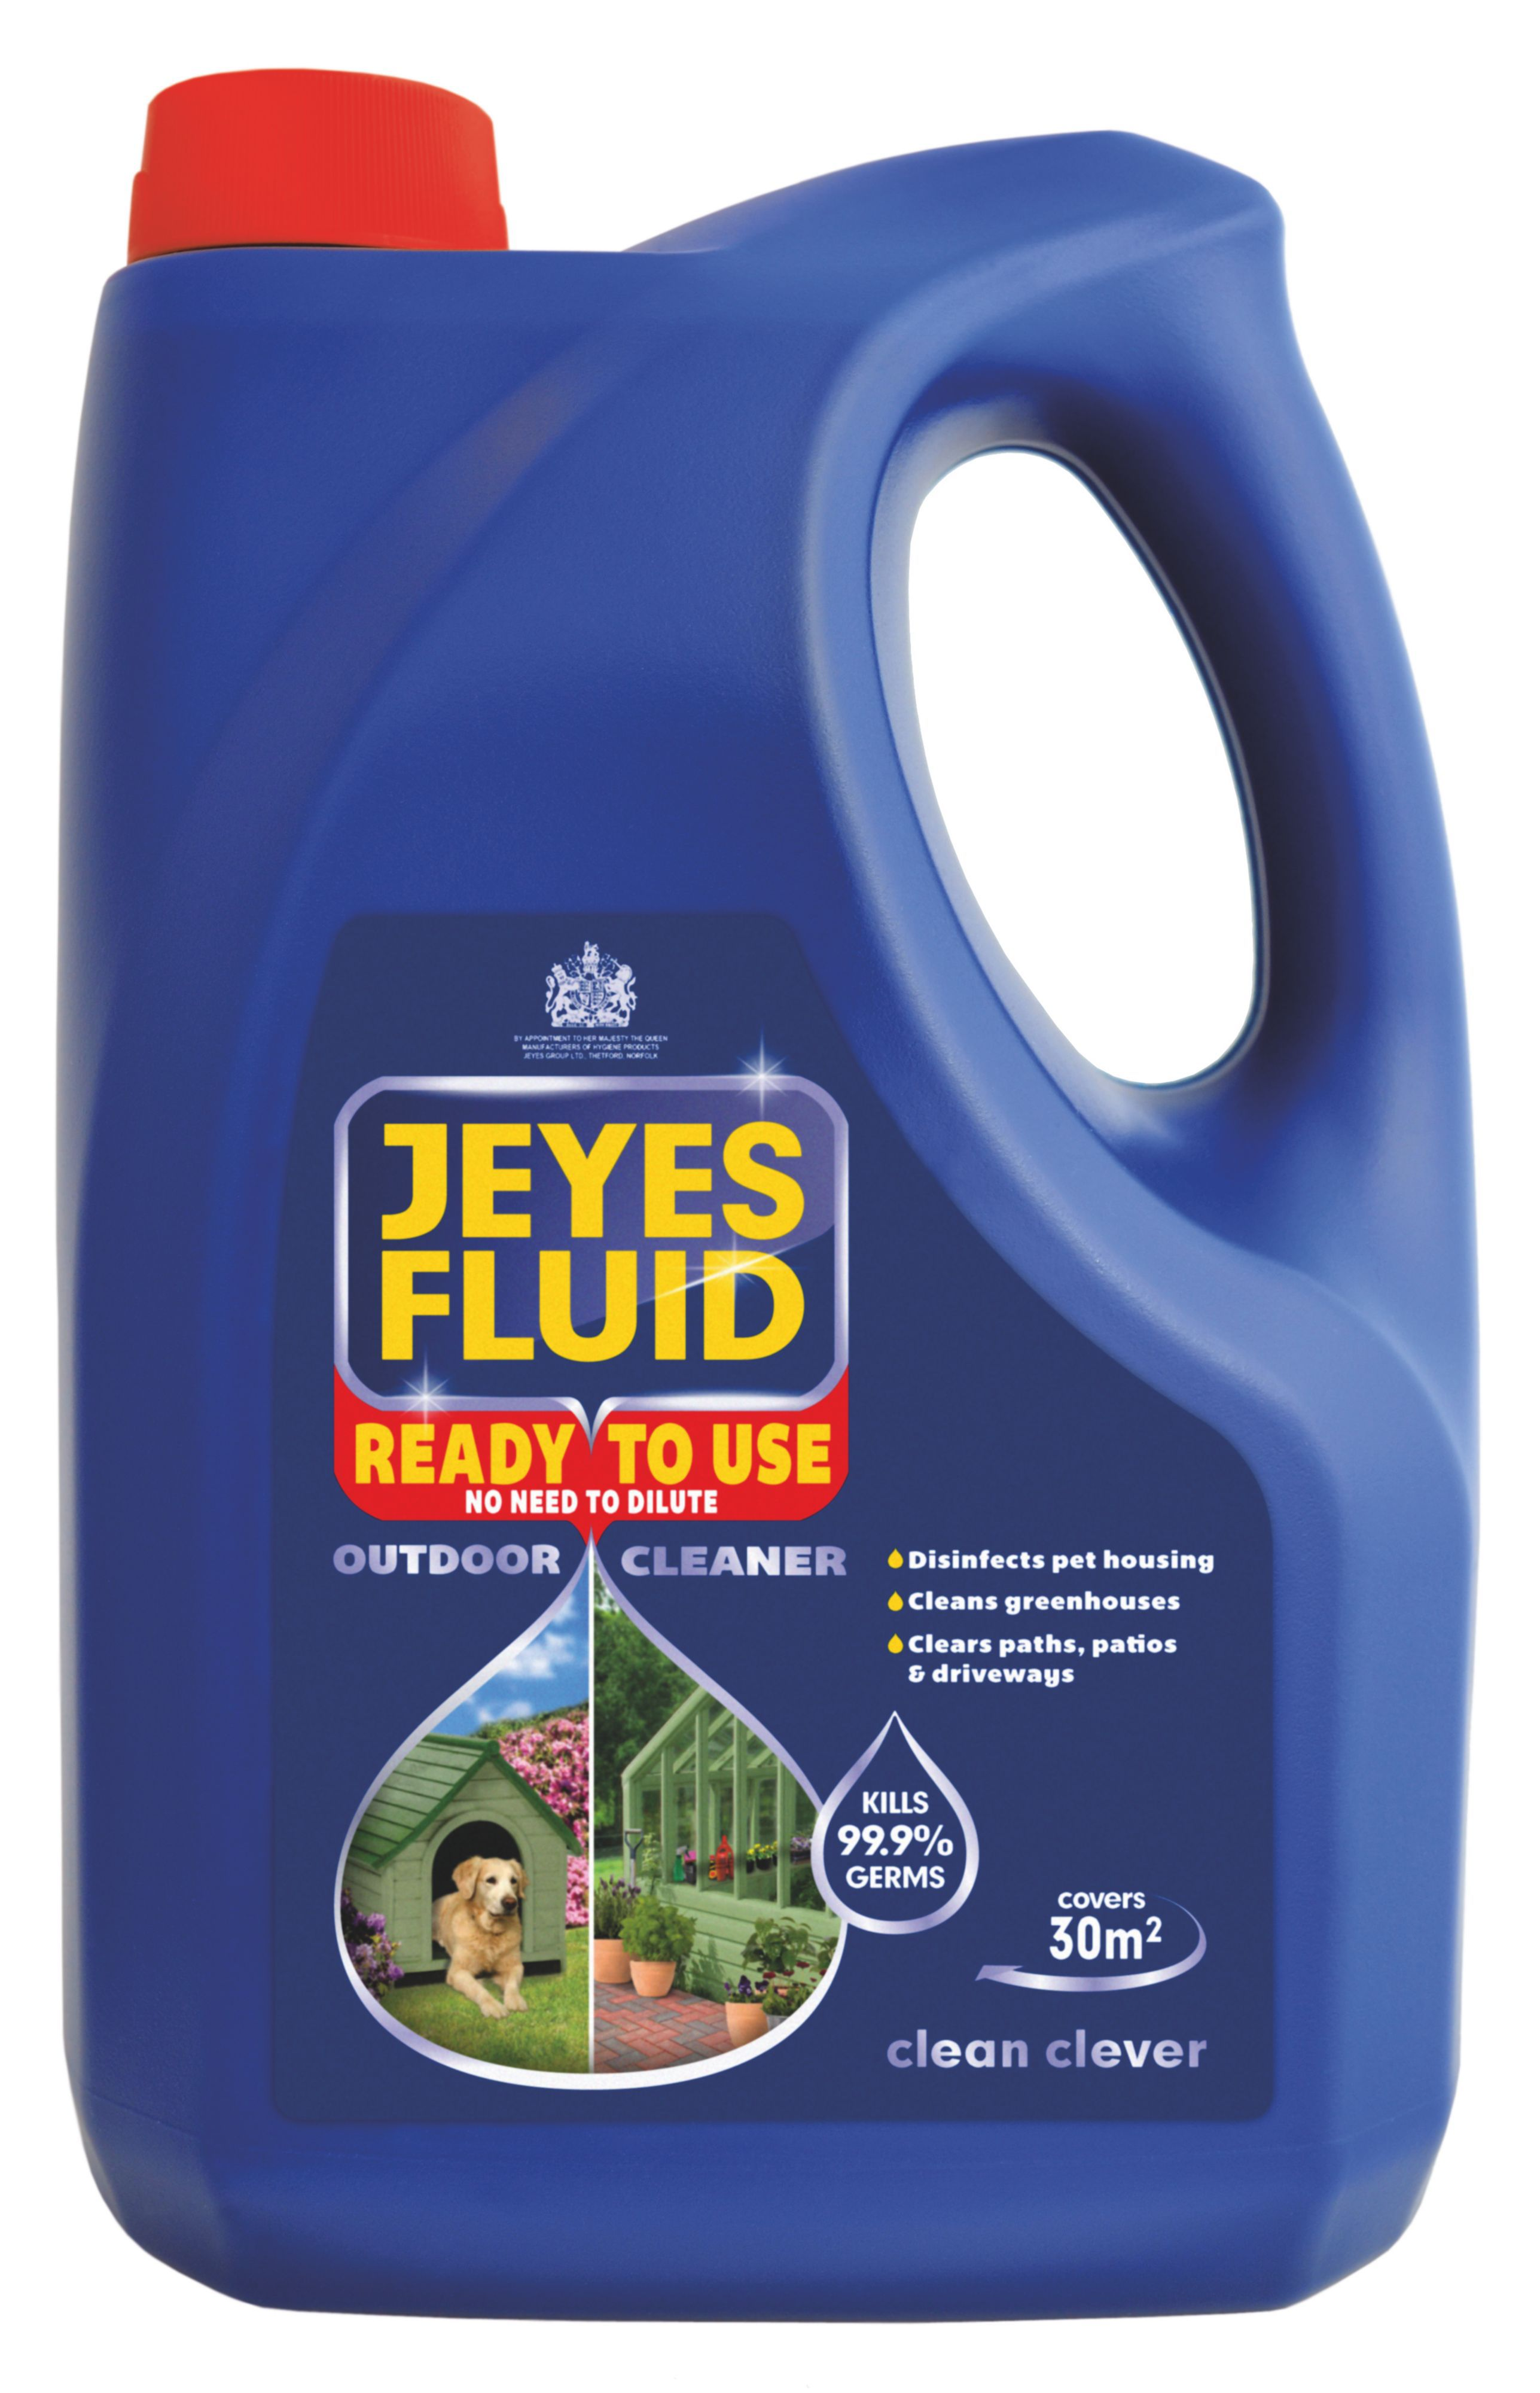 Leather jacket killer b&q - Jeyes Fluid Ready To Use Outdoor Disinfectant 4l Departments Diy At B Q